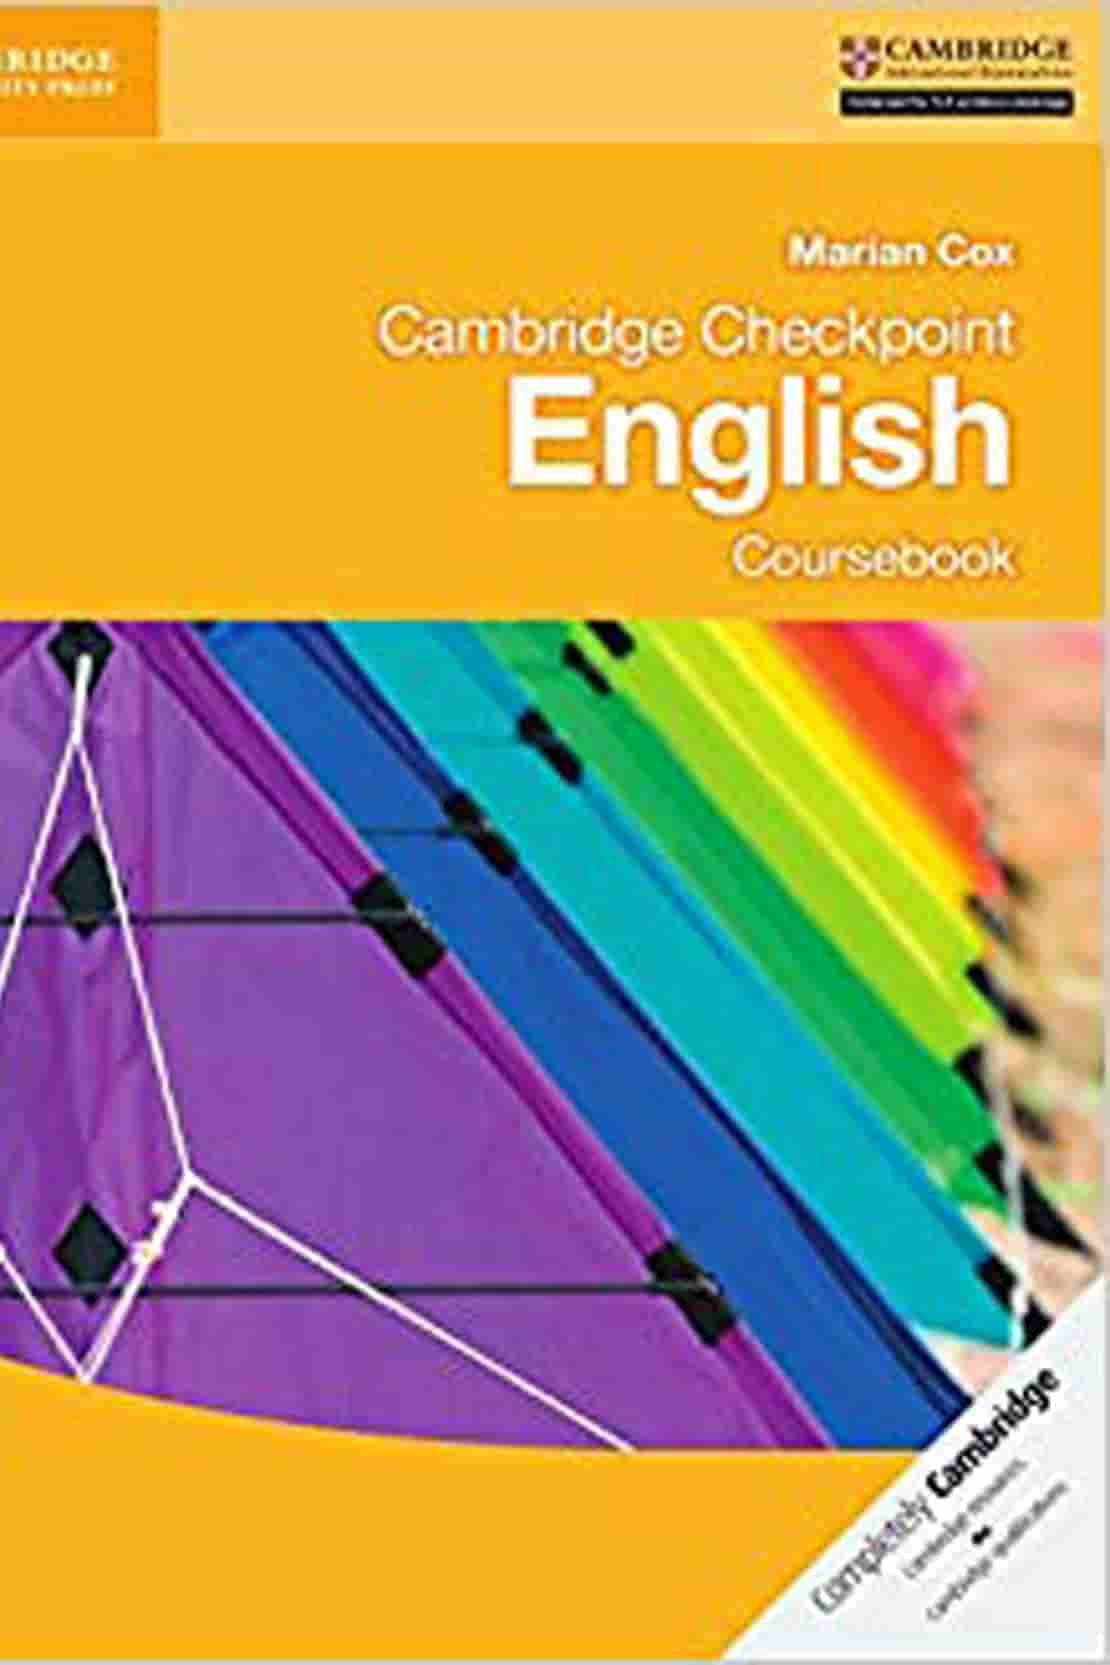 CAMBRIDGE CHECK POINT ENGLISH BOOK 7 Class 6